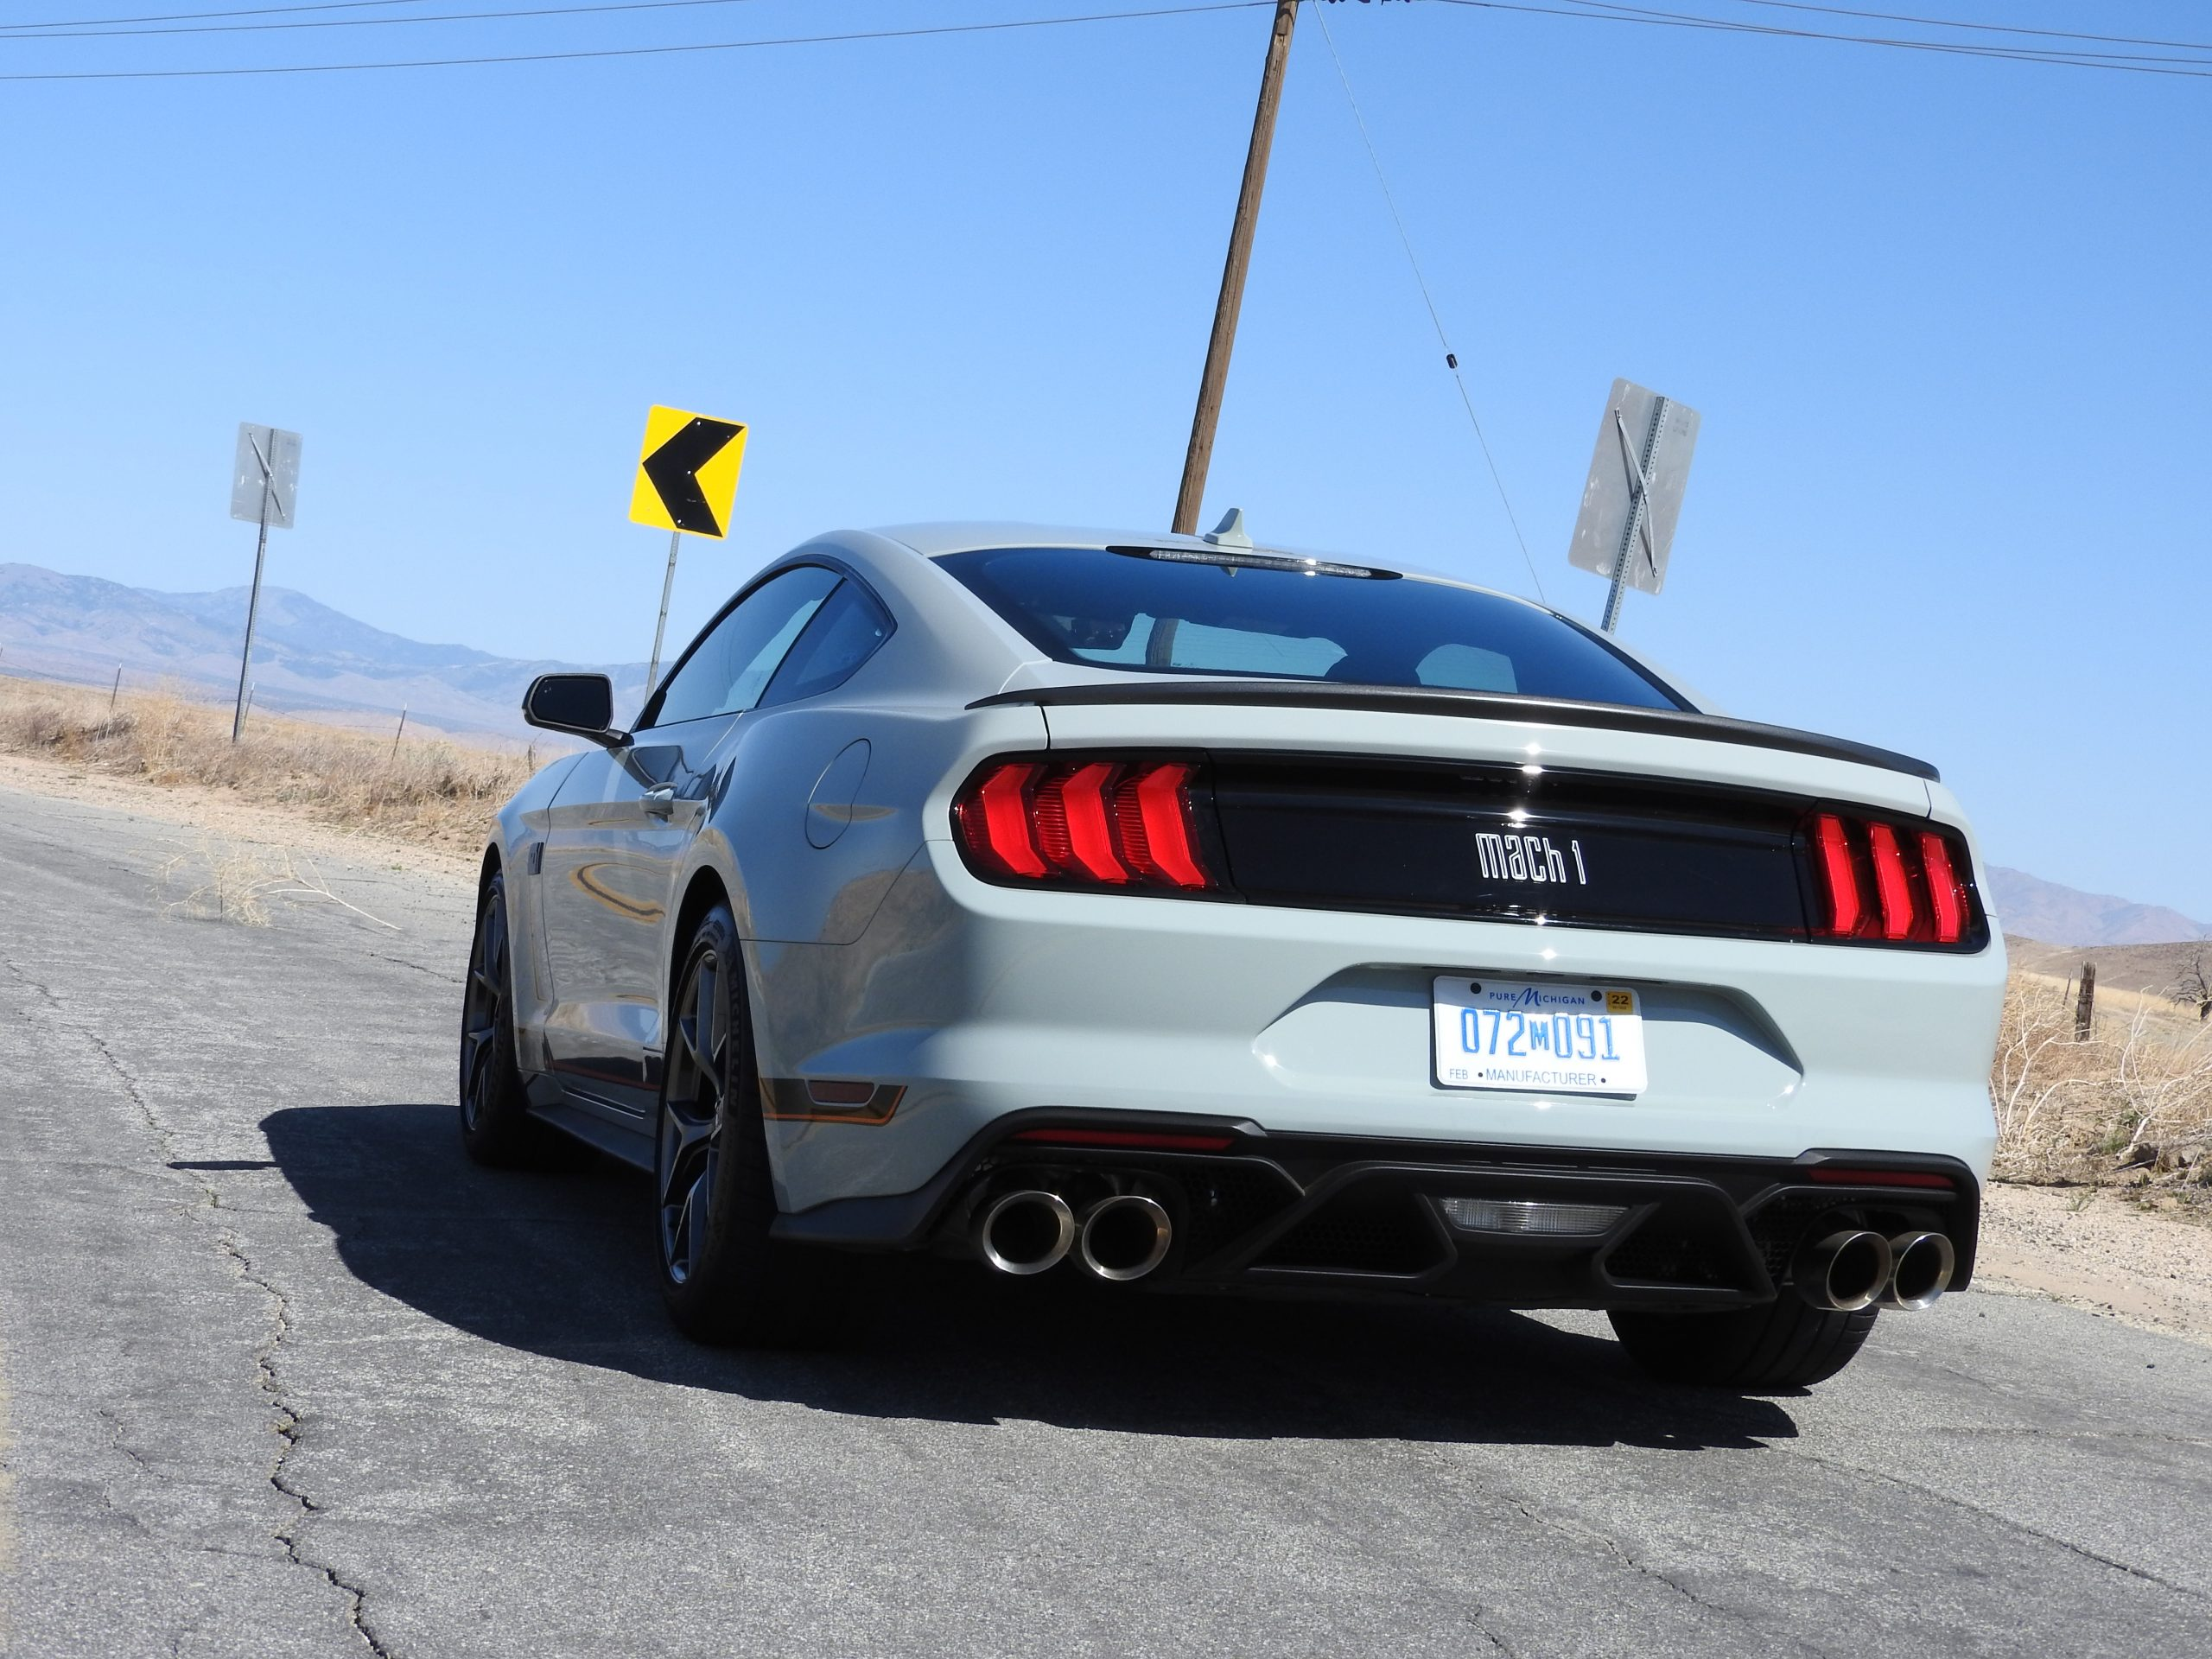 New Mustang Mach 1 rear three-quarter